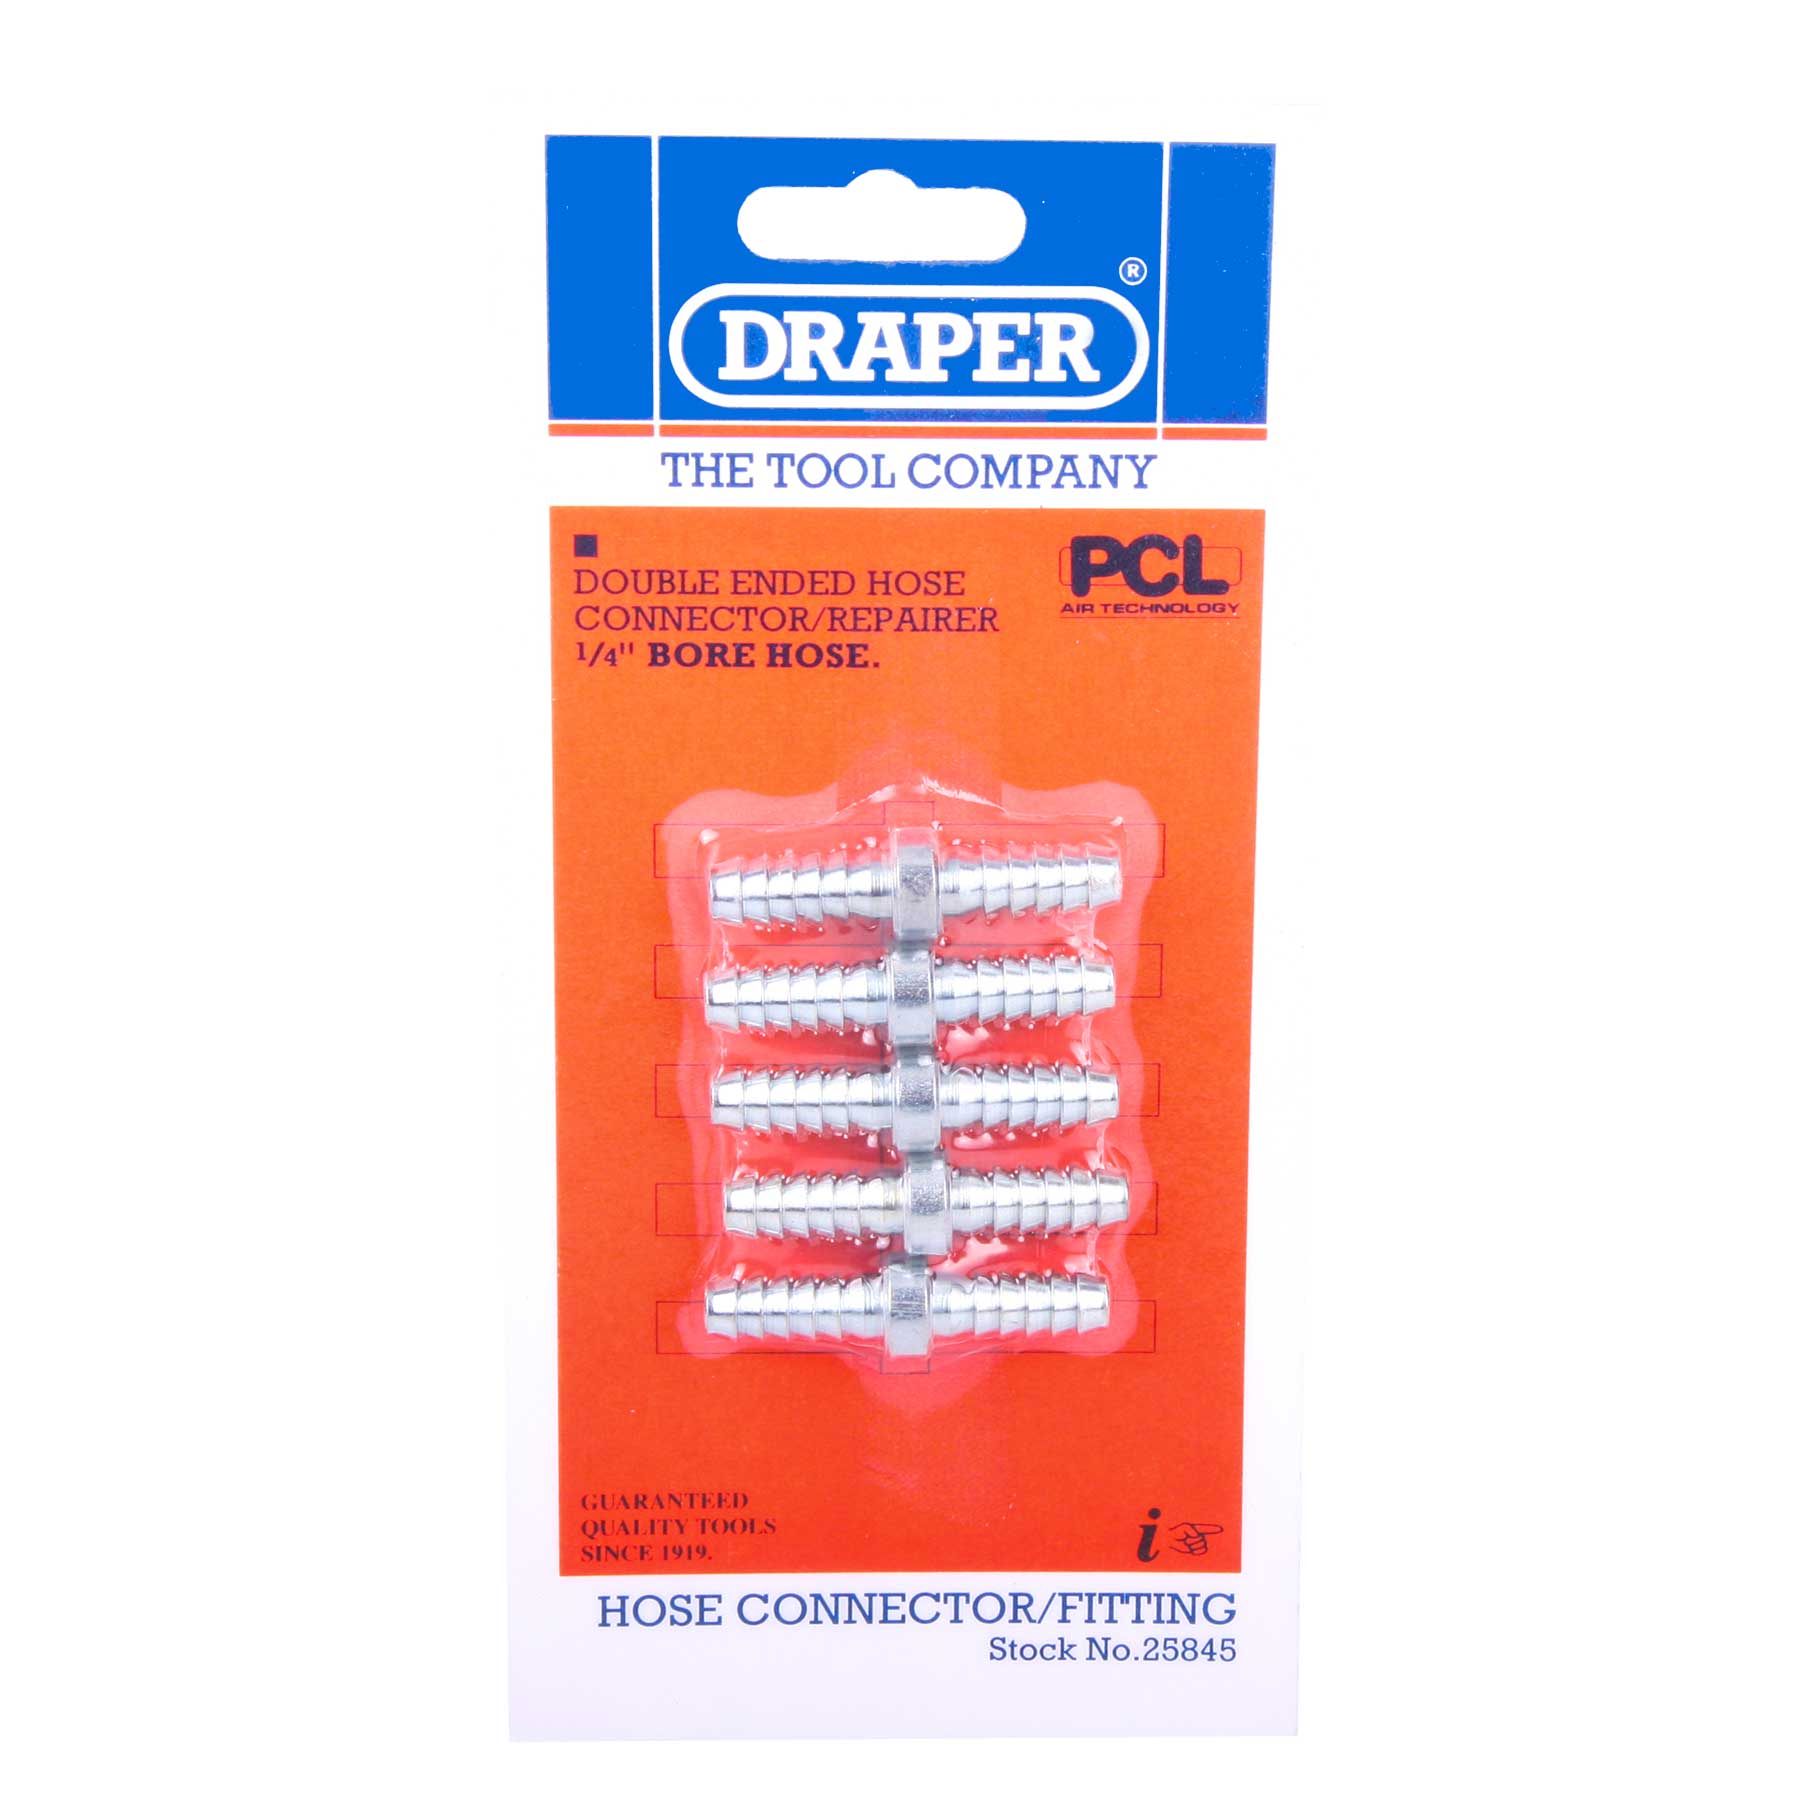 Draper 25845 A2983 5 X 14 Inch Bore Hose Connector Repair pack of 5 Thumbnail 1